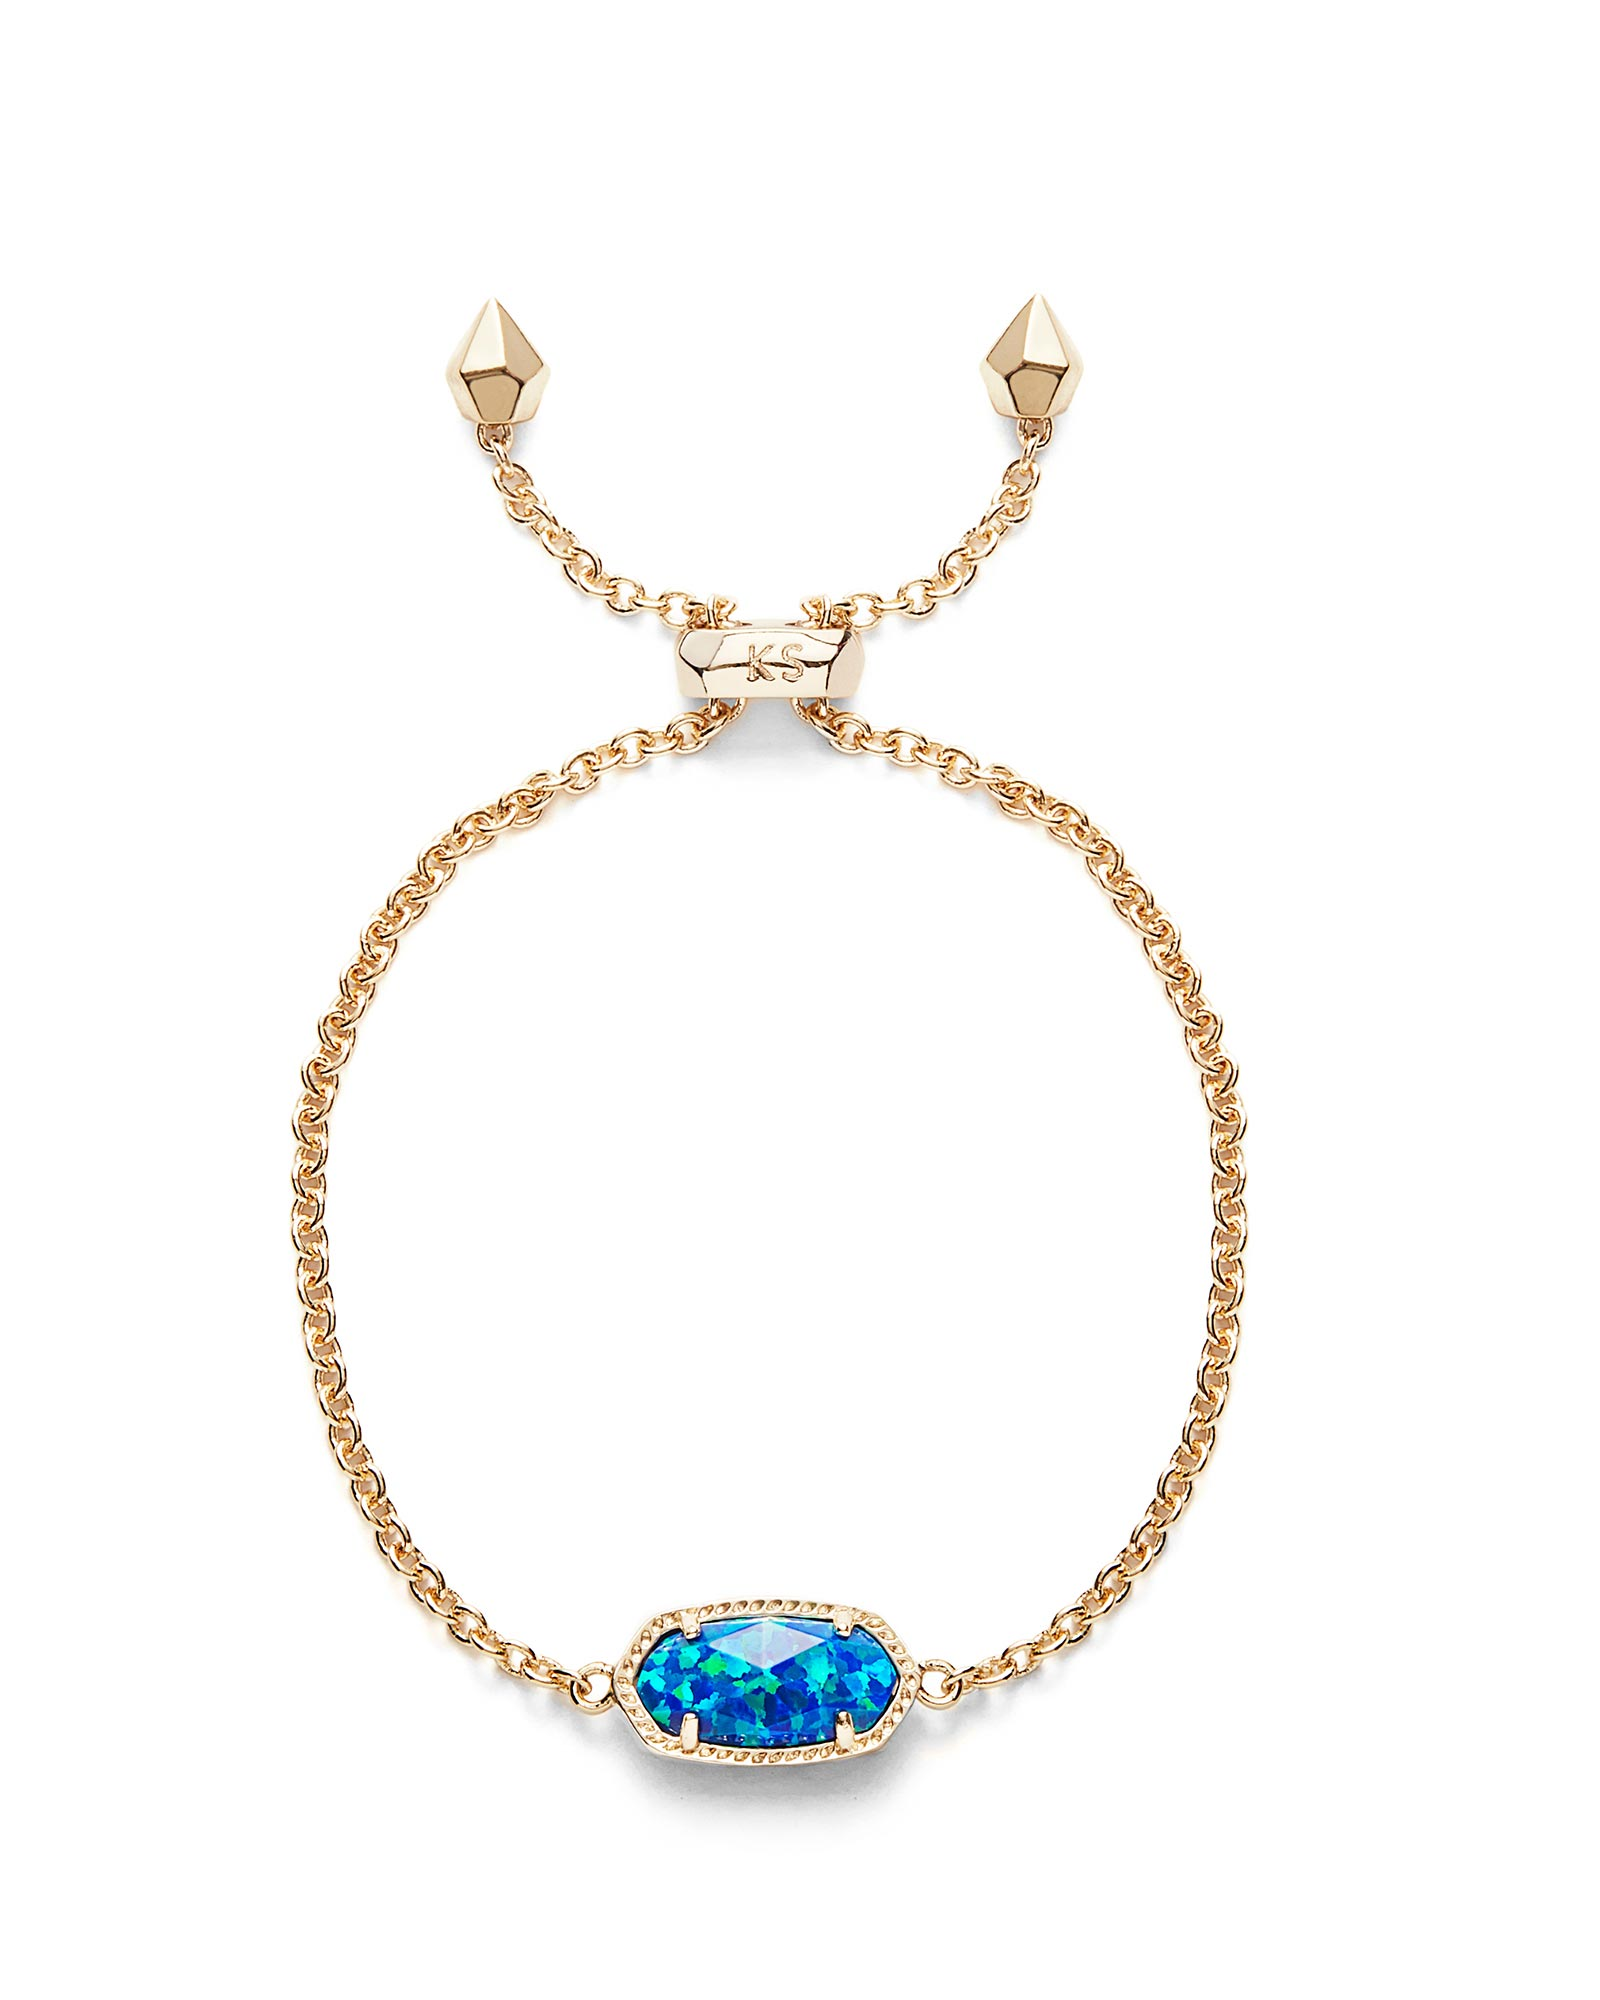 Elaina Adjustable Chain Bracelet in Royal Blue Kyocera Opal